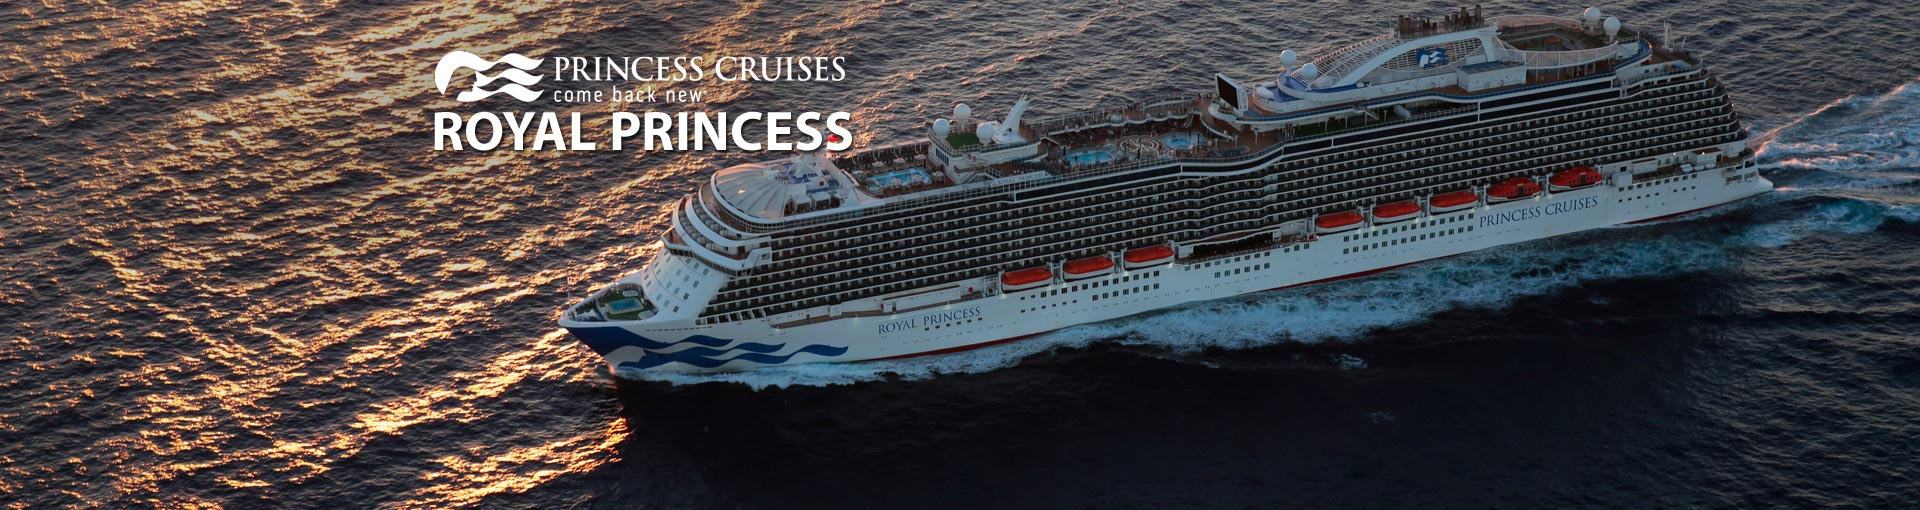 Princess Cruises Royal Princess cruise ship